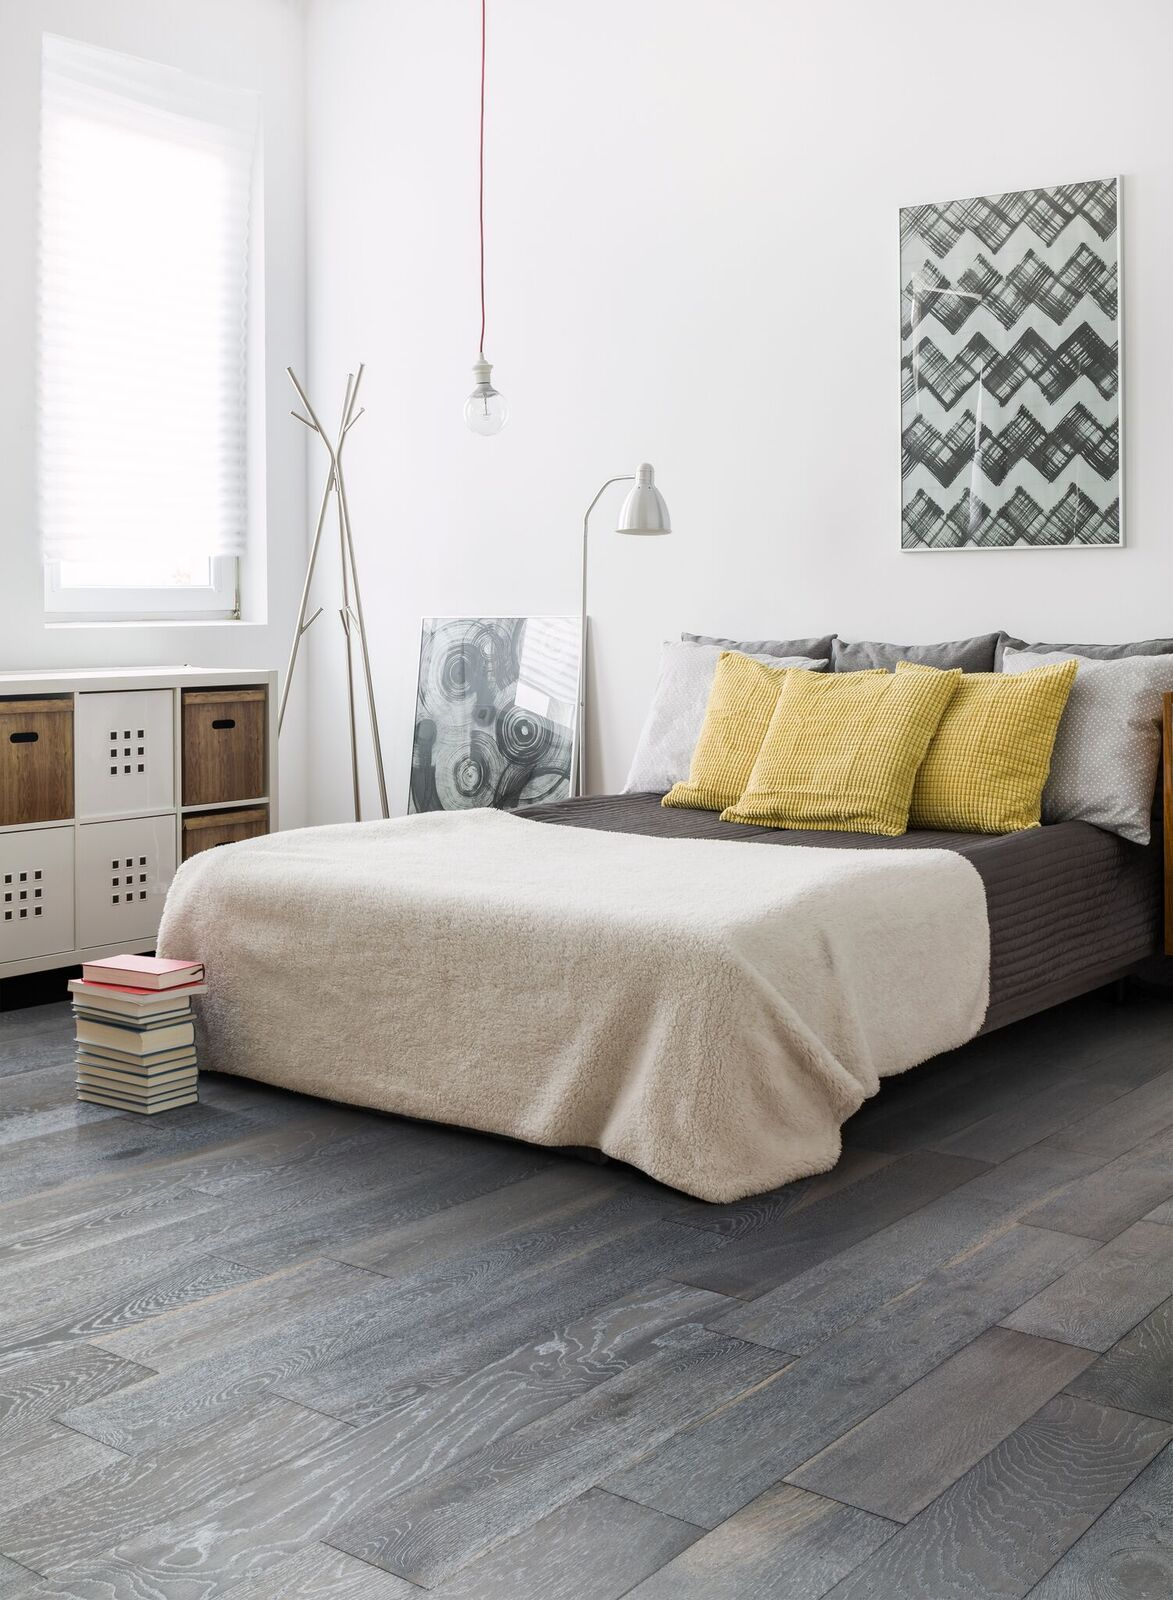 20 Pics Review Gray Hardwood Floors Bedroom And Description In 2020 Grey Wood Floors Bedroom Grey Wood Floors Grey Hardwood Floors